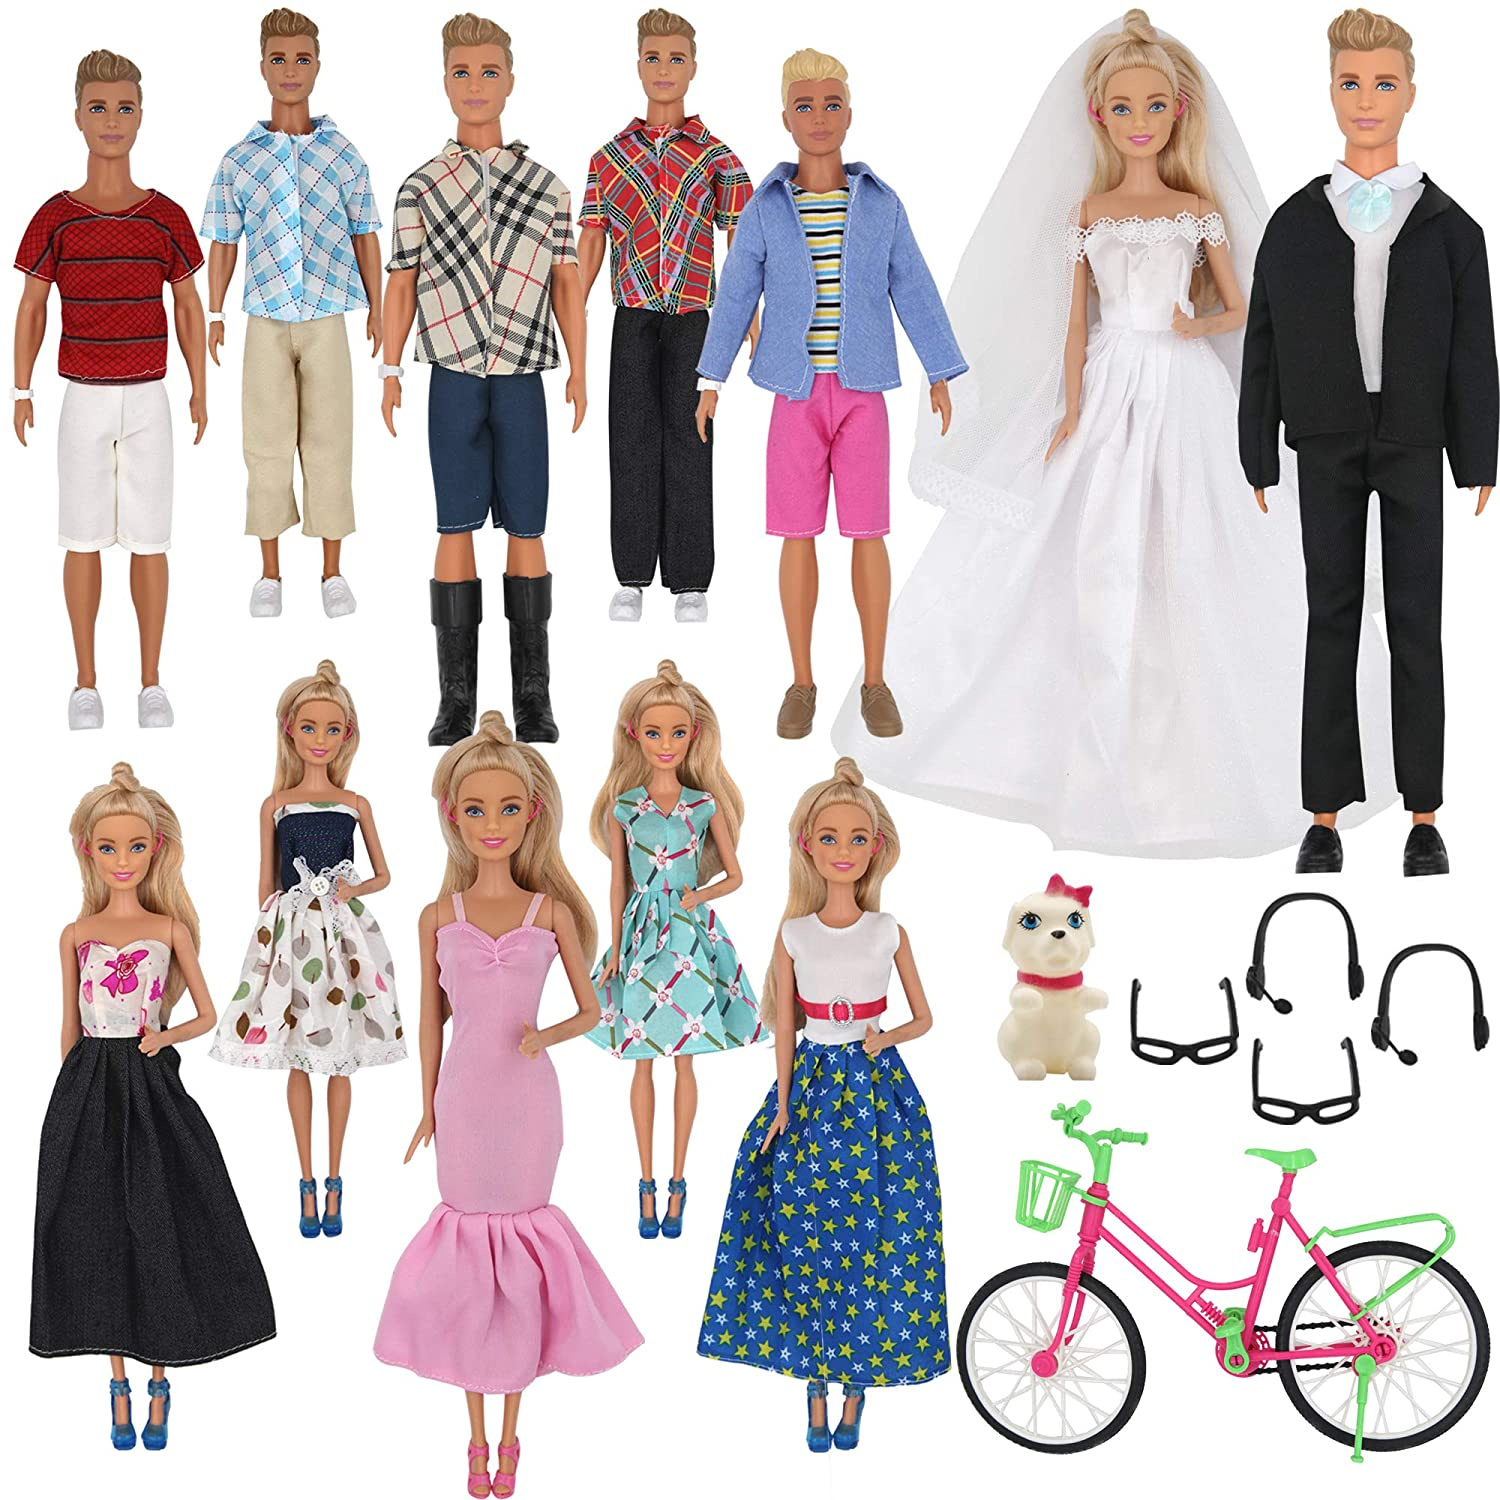 ZTWEDEN 90Pcs Doll Clothes and Accessories for Barbie Dolls Set Contain 10 Different Handmade Party Doll Grown Outfits, 1 Handmade Wedding Dress, 1 Mermaid Dress, 78 Accessories for Barbie Dolls